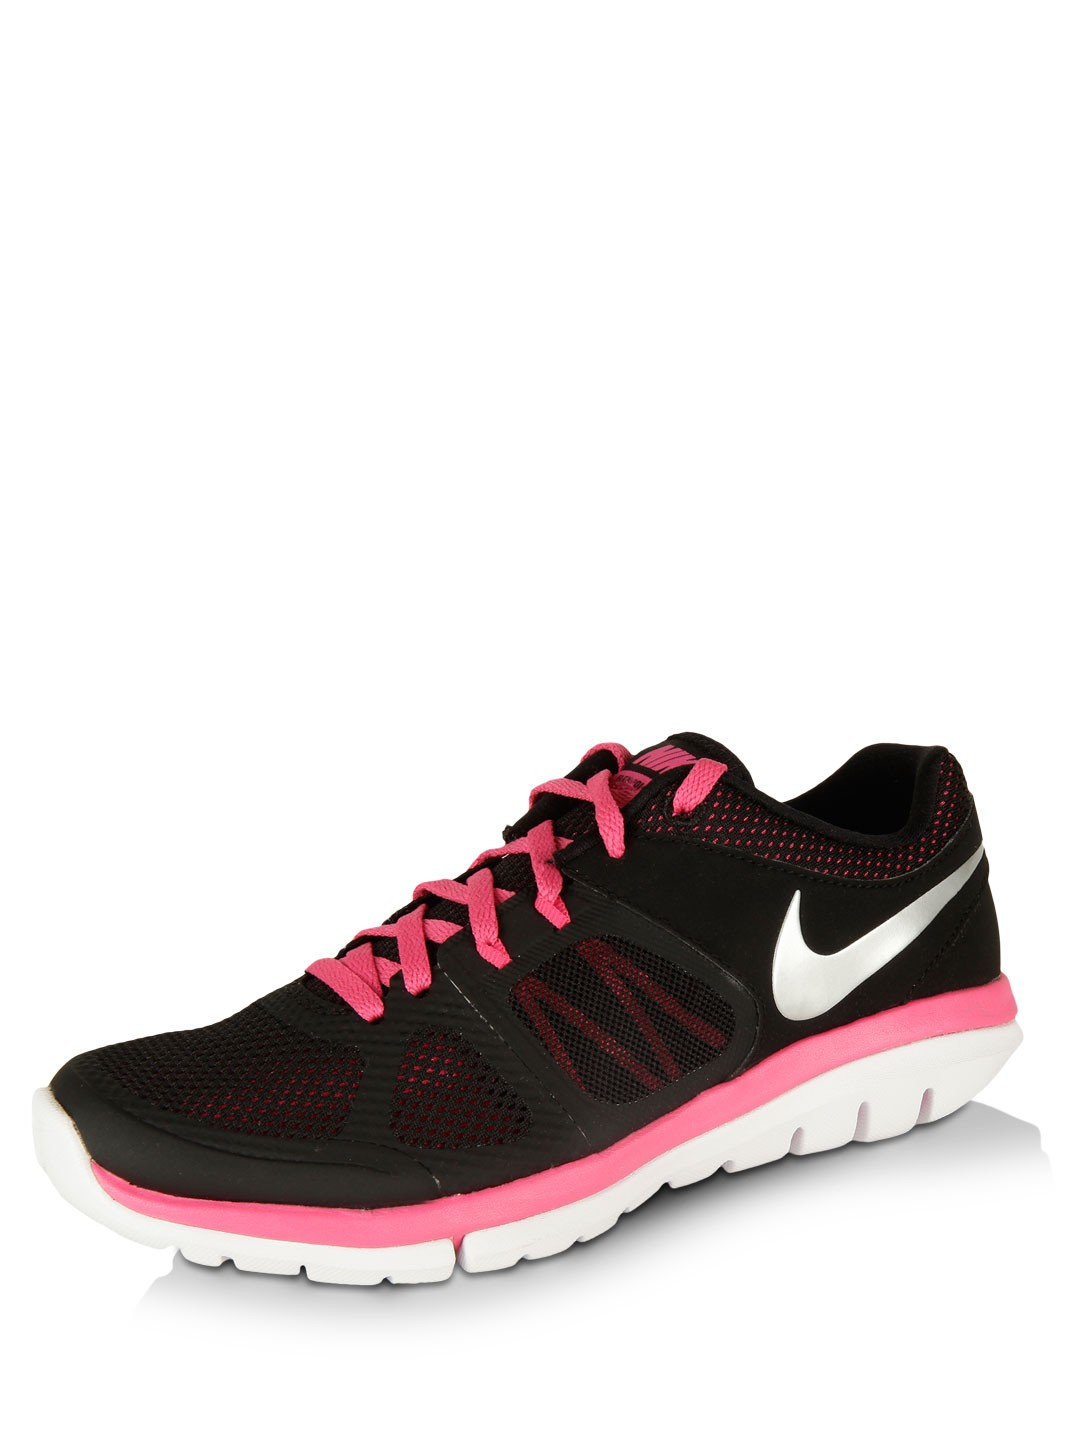 running shoes women nike india